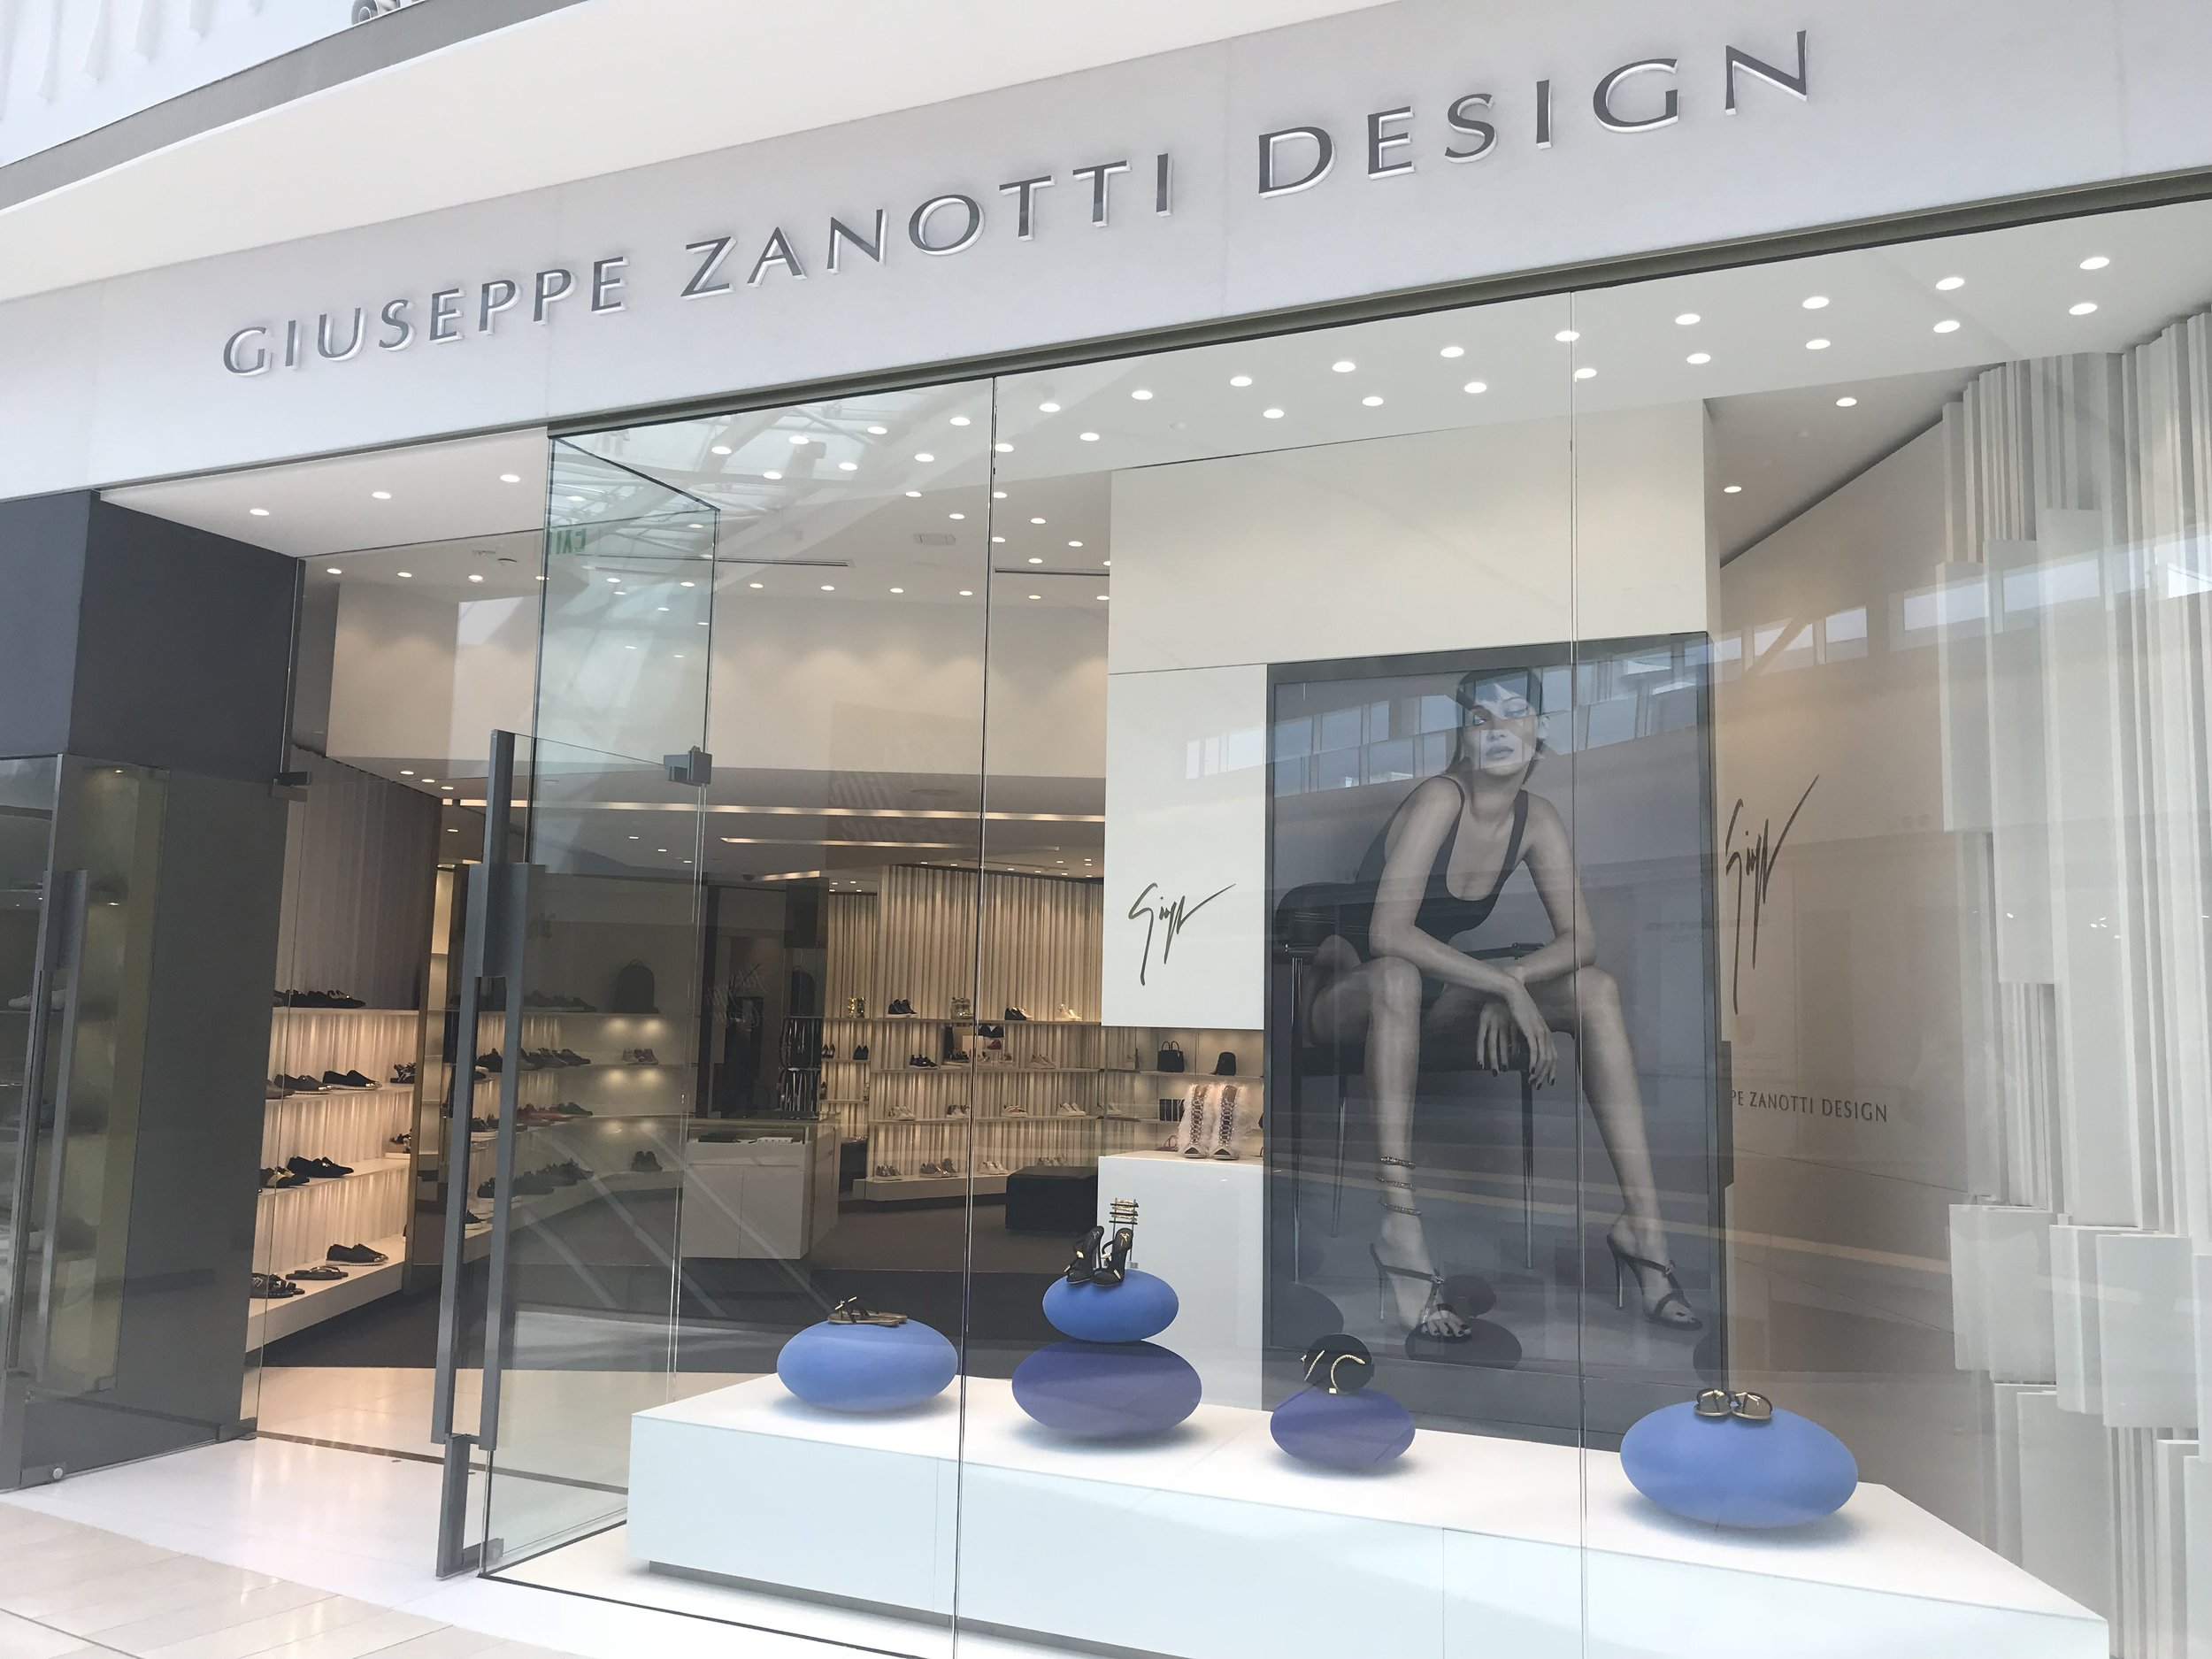 Welcome champagne at our Giuseppe Zanotti Design Store. - GWP with Purchase over $1,000. Delivery services if needed-Personal Delivery of GZ merchandise. Consignment services. Personal stylist from the GZ boutique - A knowledgeable employee who will provide the best styling advice for our VIP clients.